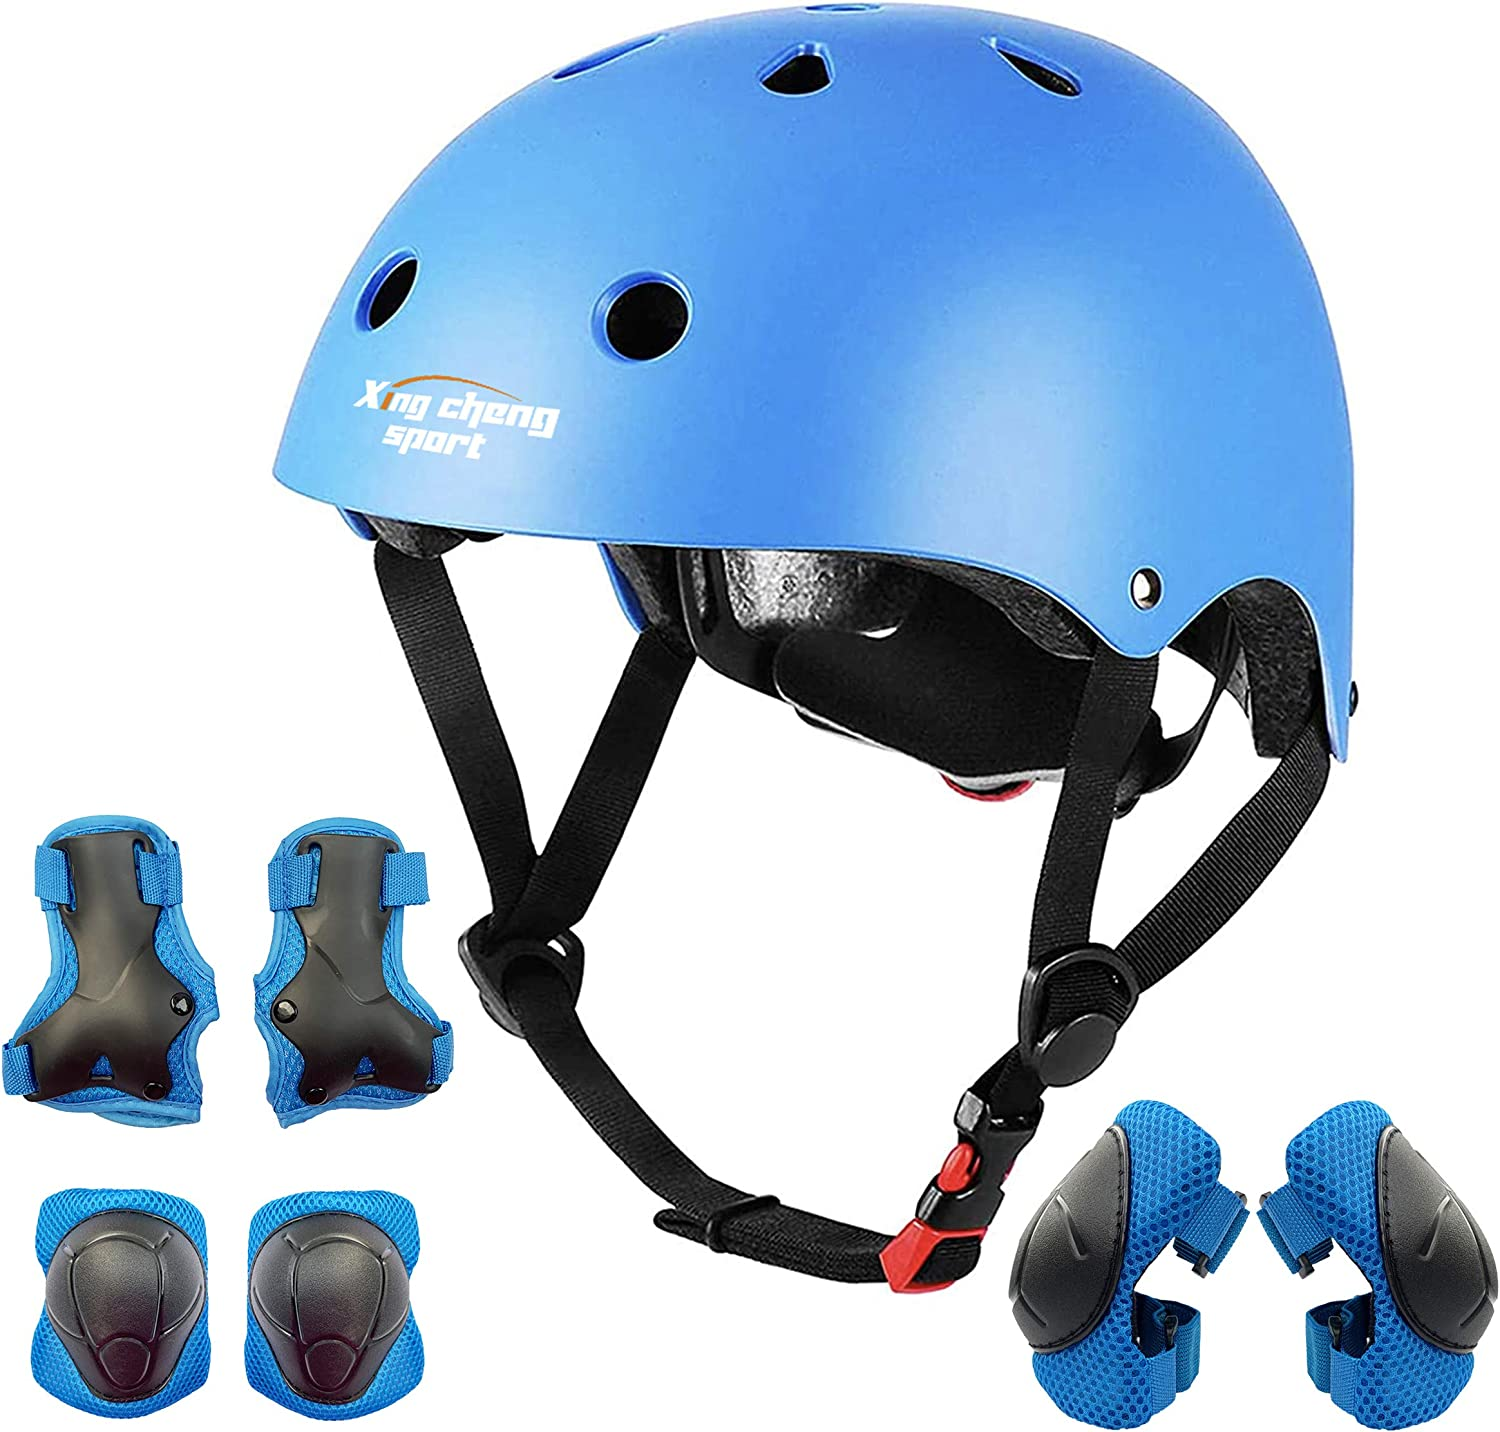 Lucky-M Kids Protective Gear Set Boys Girls Adjustable Size Helmet with Knee Pads Elbow Pads Wrist Guards for Skateboard Cycling Hoverboard Scooter Rollerblading